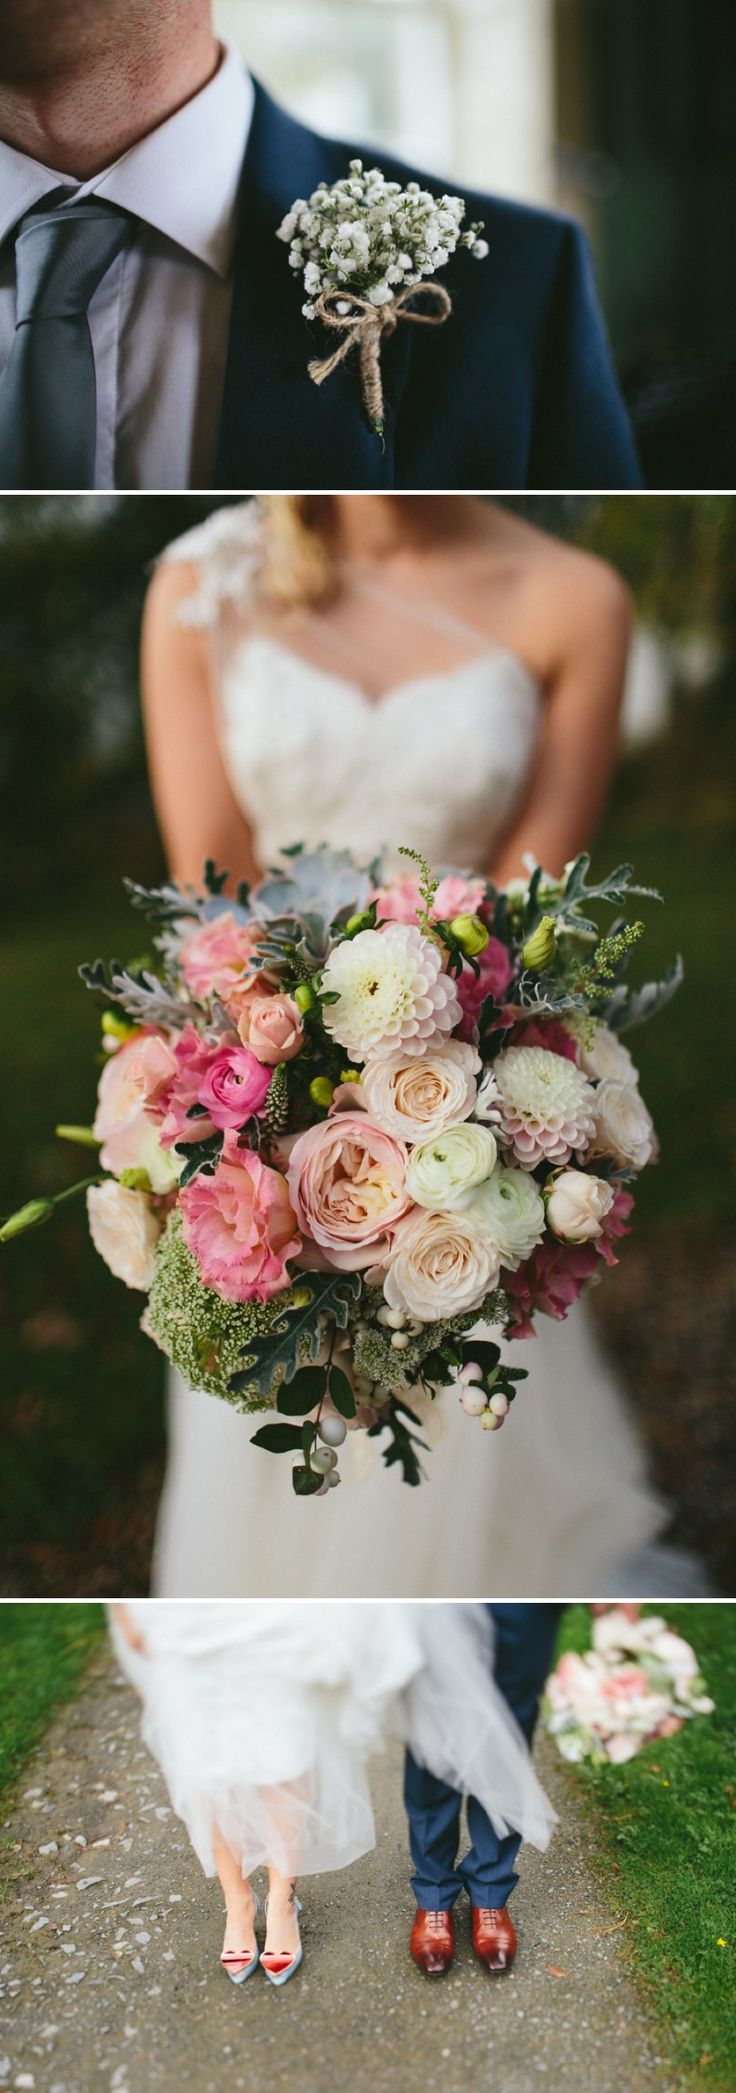 A Romantic And Glamorous Wedding In Northern Ireland At Mount Stuart With Pink Dessy Bridesmaid Dresses With A Dahlia And Rose Bouquet With ...